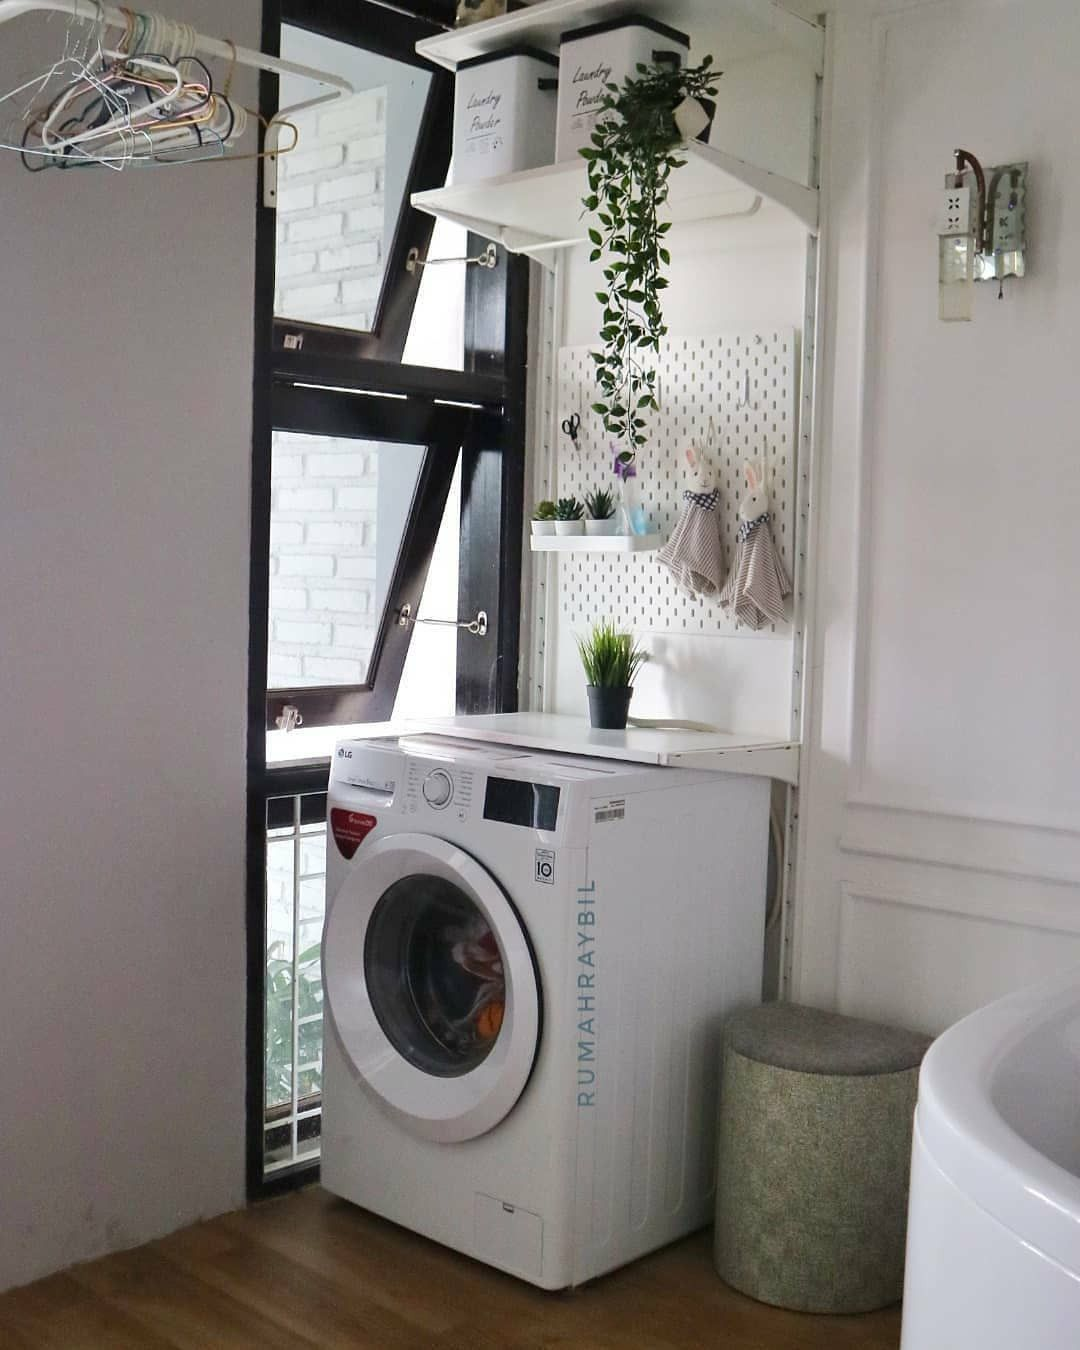 50 Clever Laundry Room Ideas That Are Practical And Space Small Outdoor Rooms